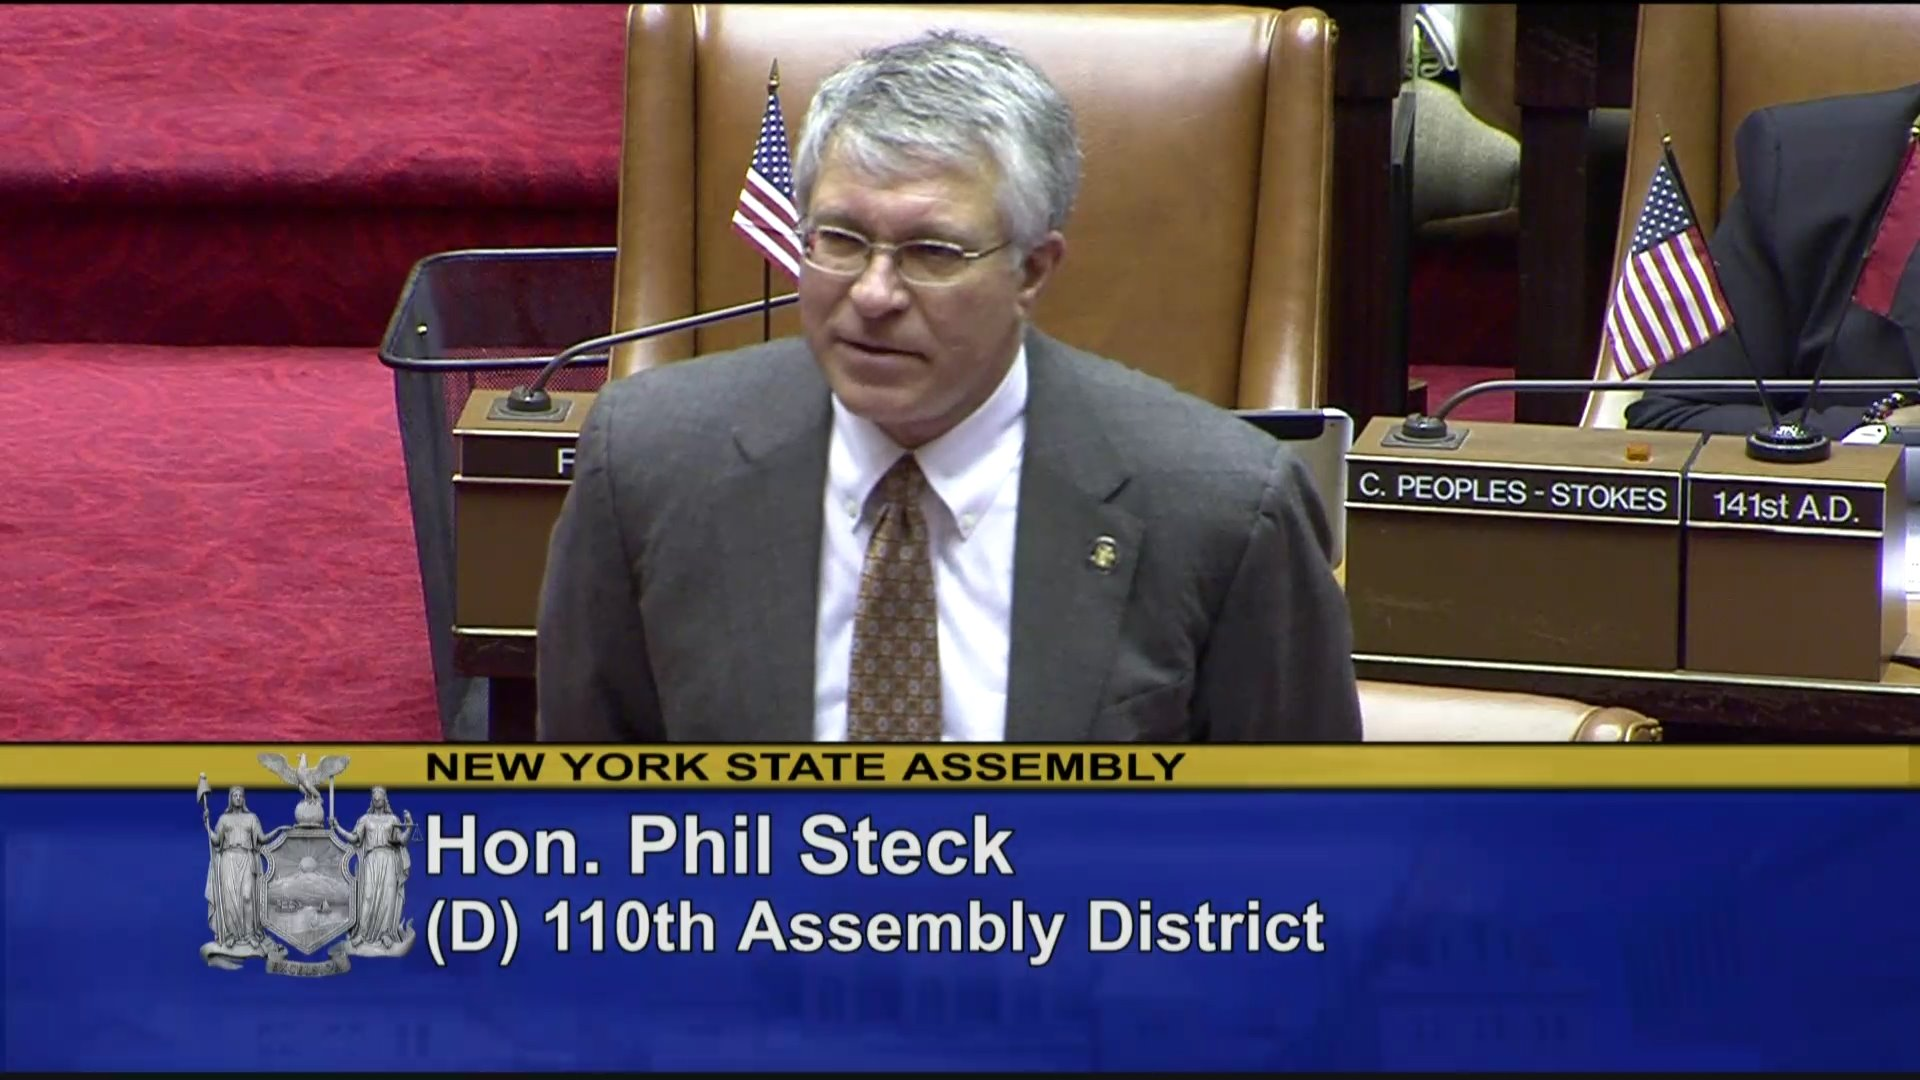 Steck Introduces Pastor Hamilton To The Assembly Chamber